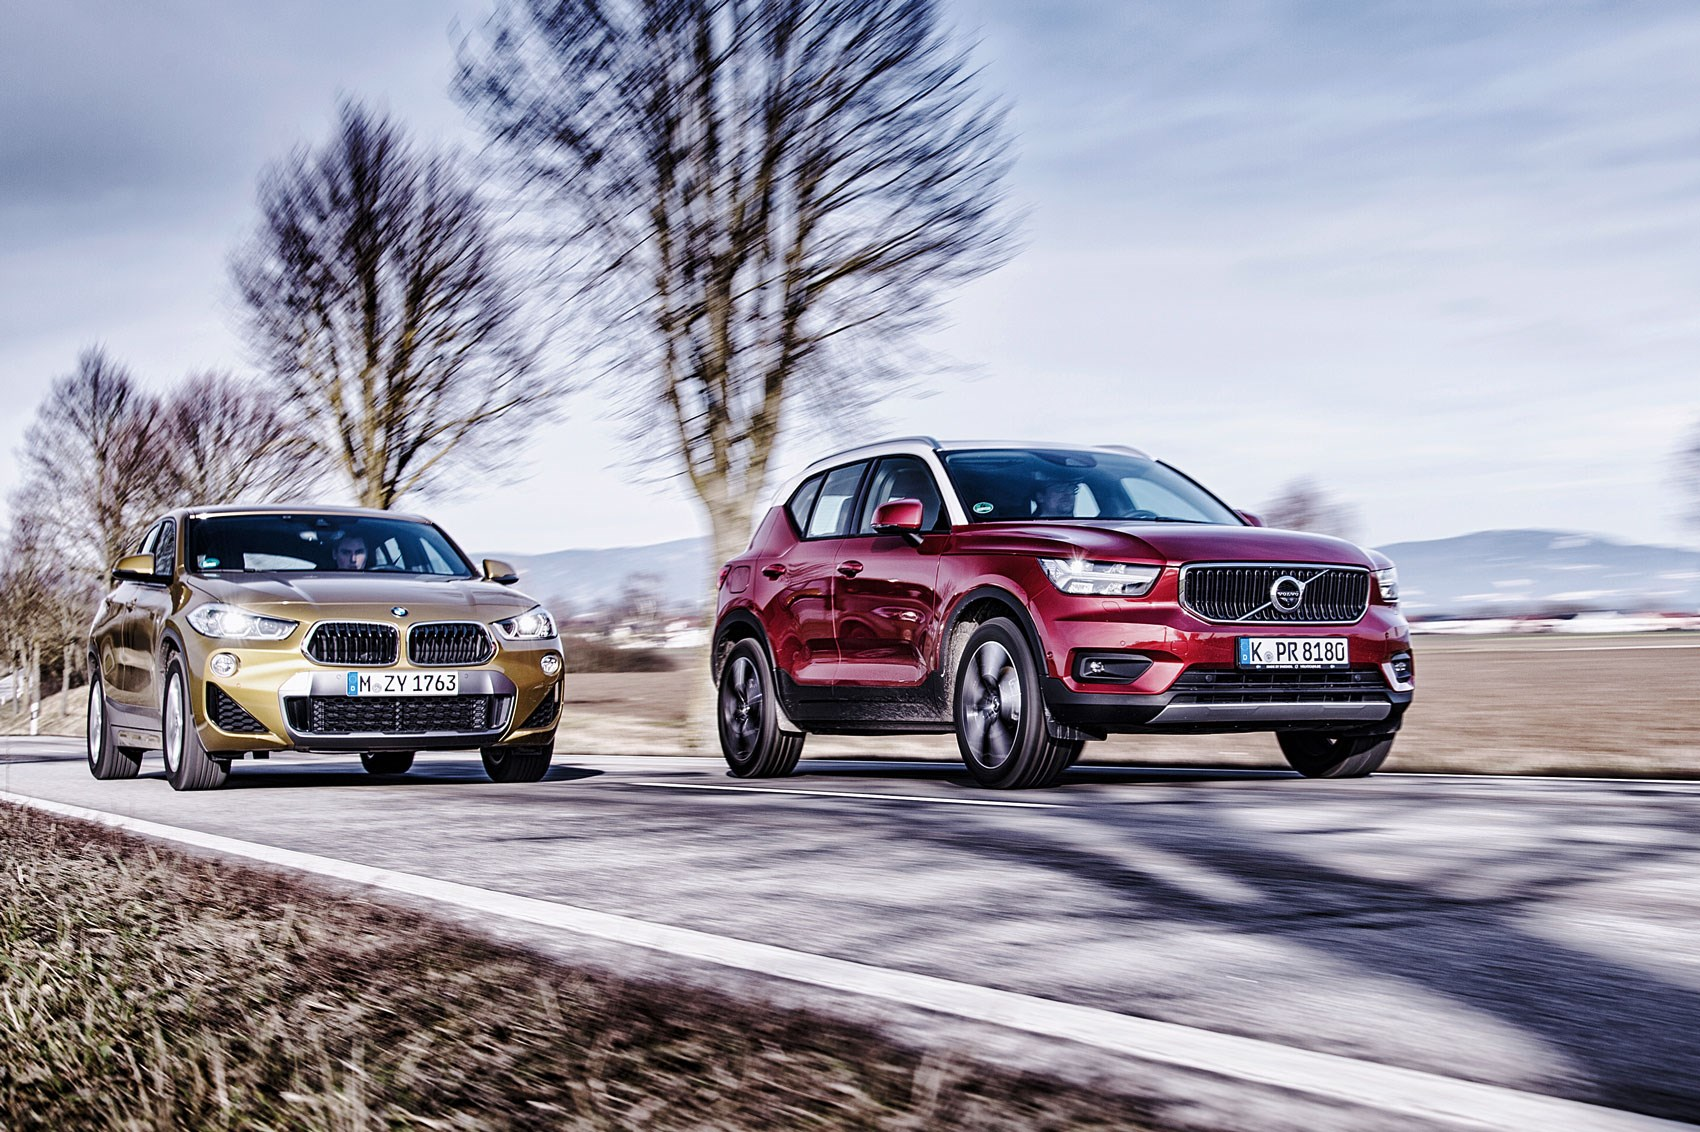 Bmw X2 Vs Jaguar E Pace Volvo Xc40 Who Makes The Best Premium